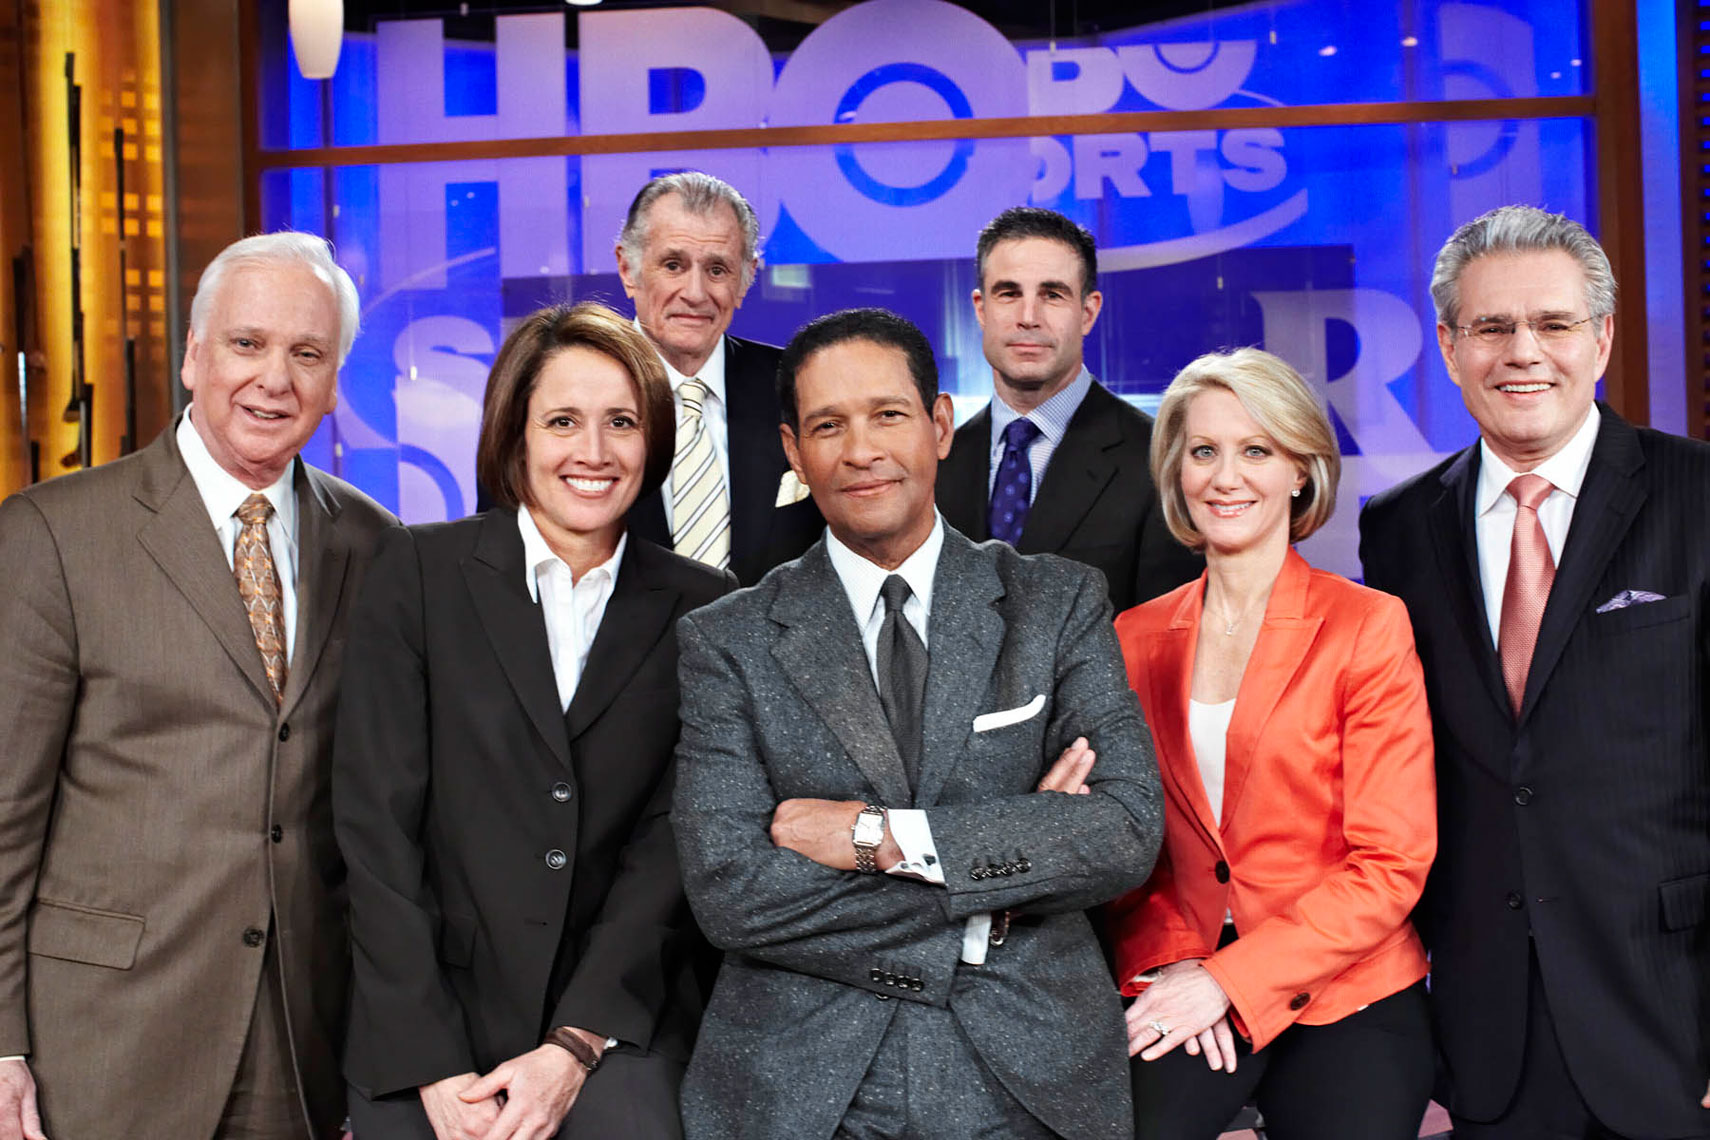 HBO Real Sports cast with Bryant Gumbel photo by Monte Isom